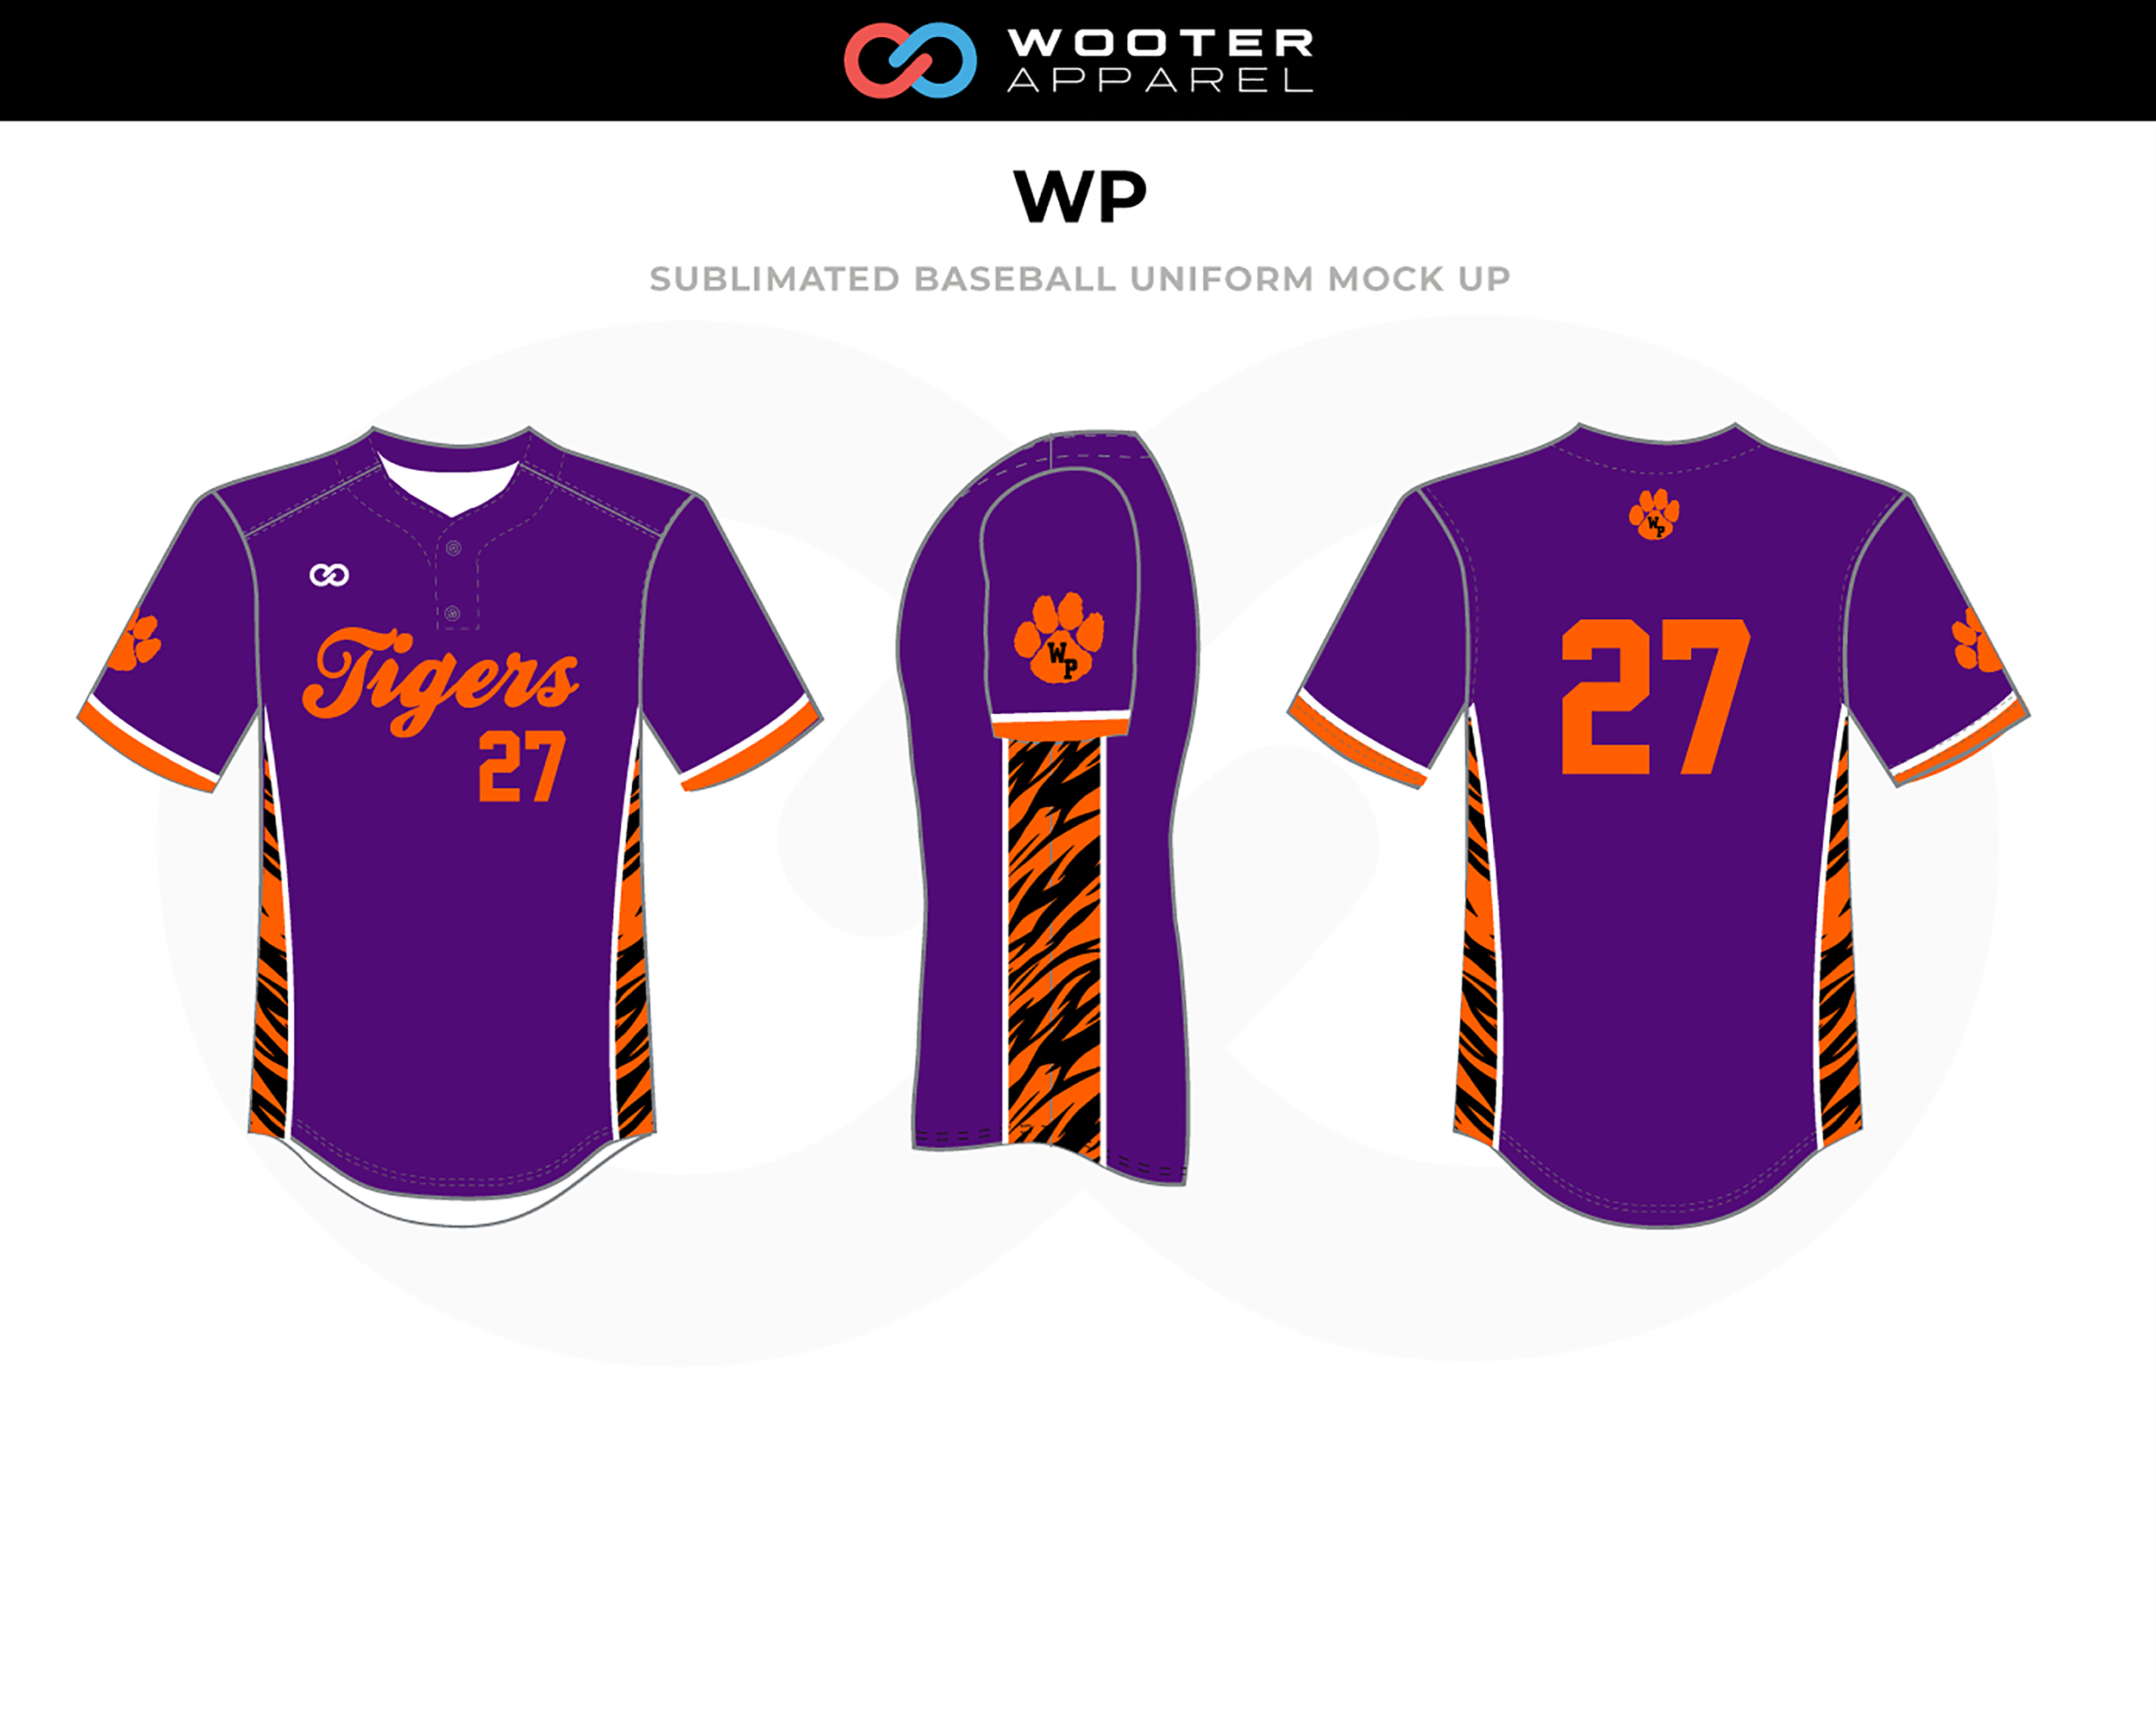 WP-Sublimated-Baseball-Uniform-Mock-Up_-v2_2019.png